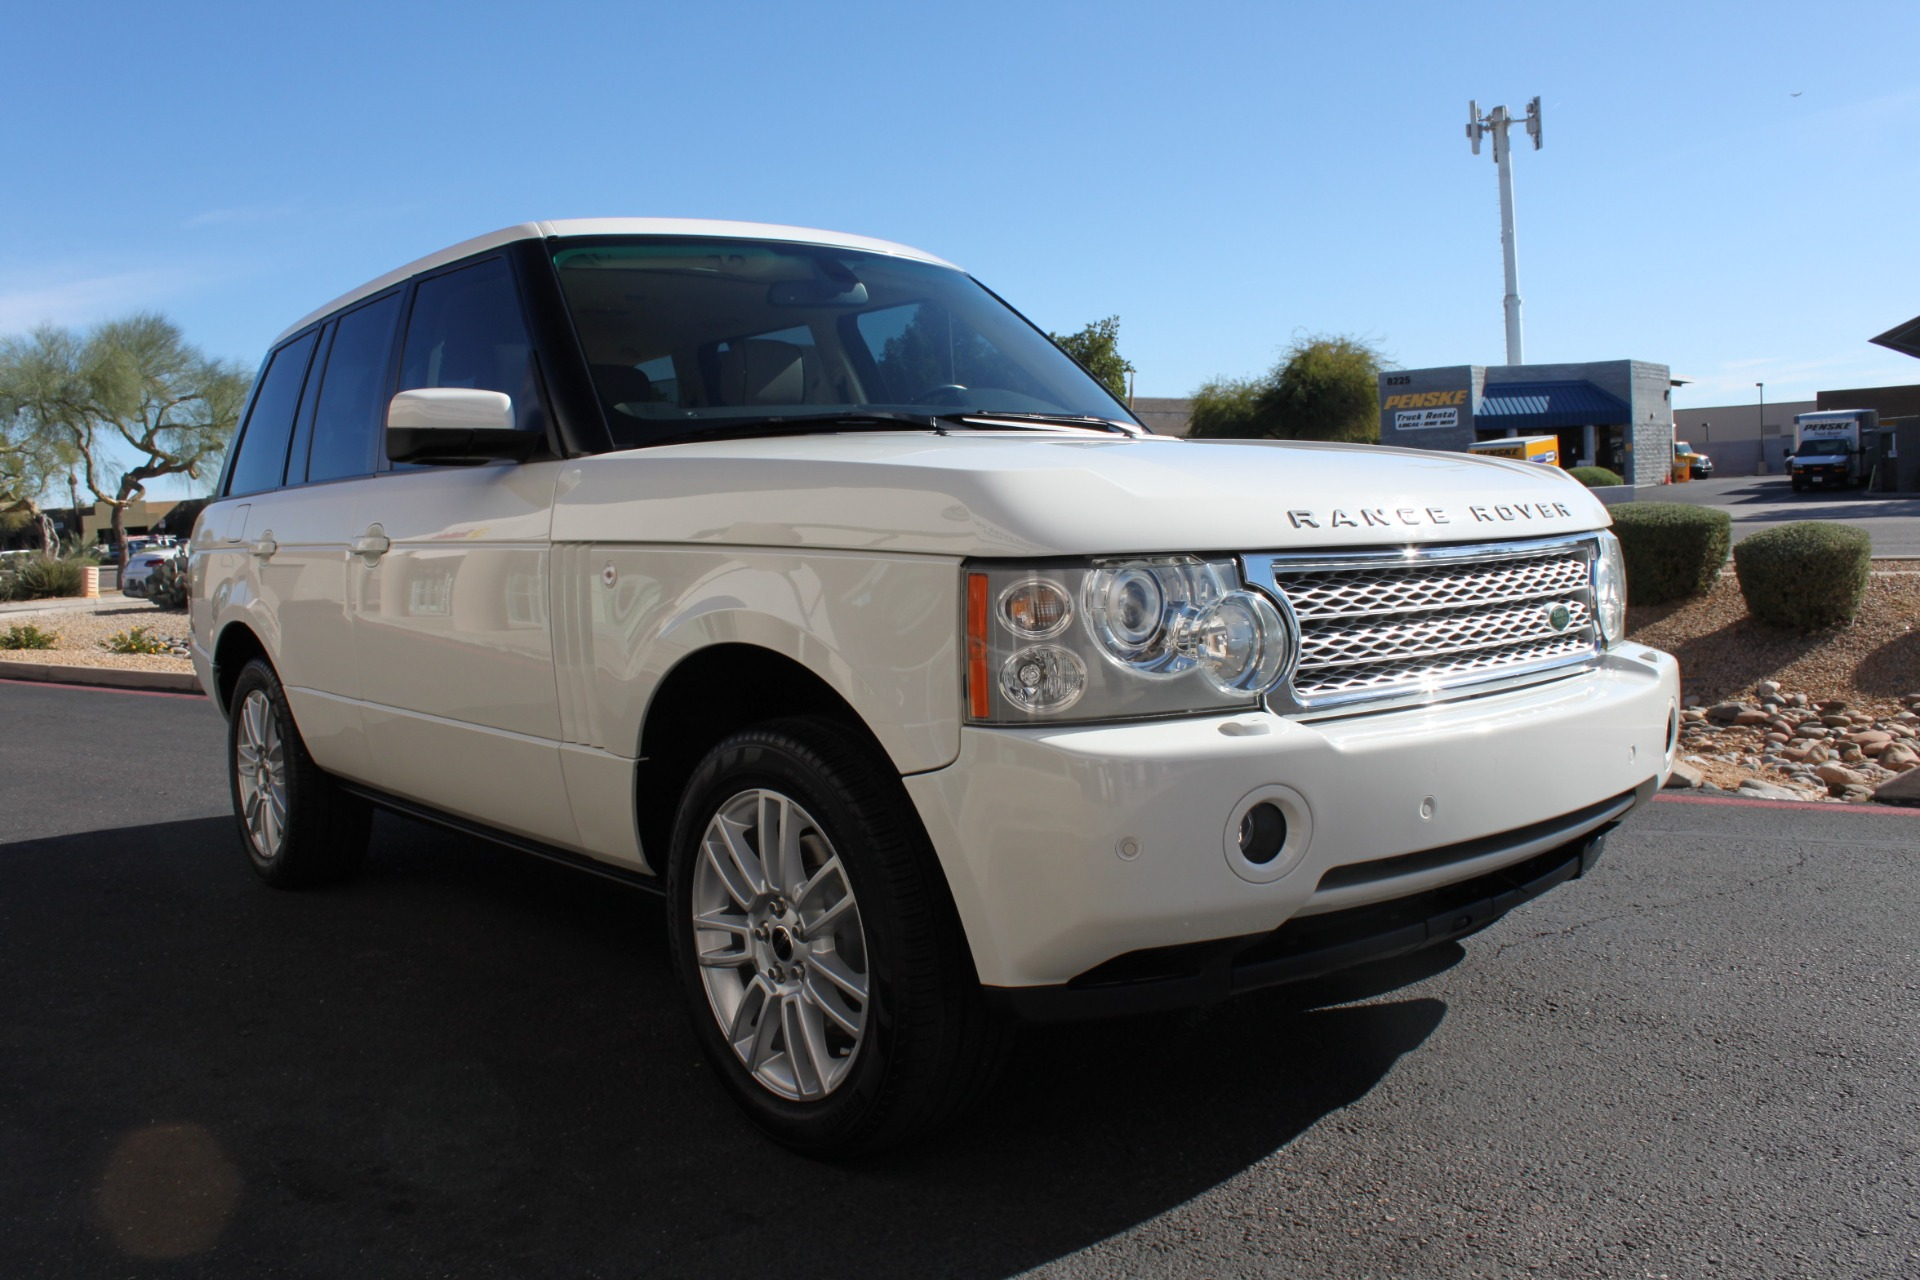 Used-2007-Land-Rover-Range-Rover-HSE-Mercedes-Benz